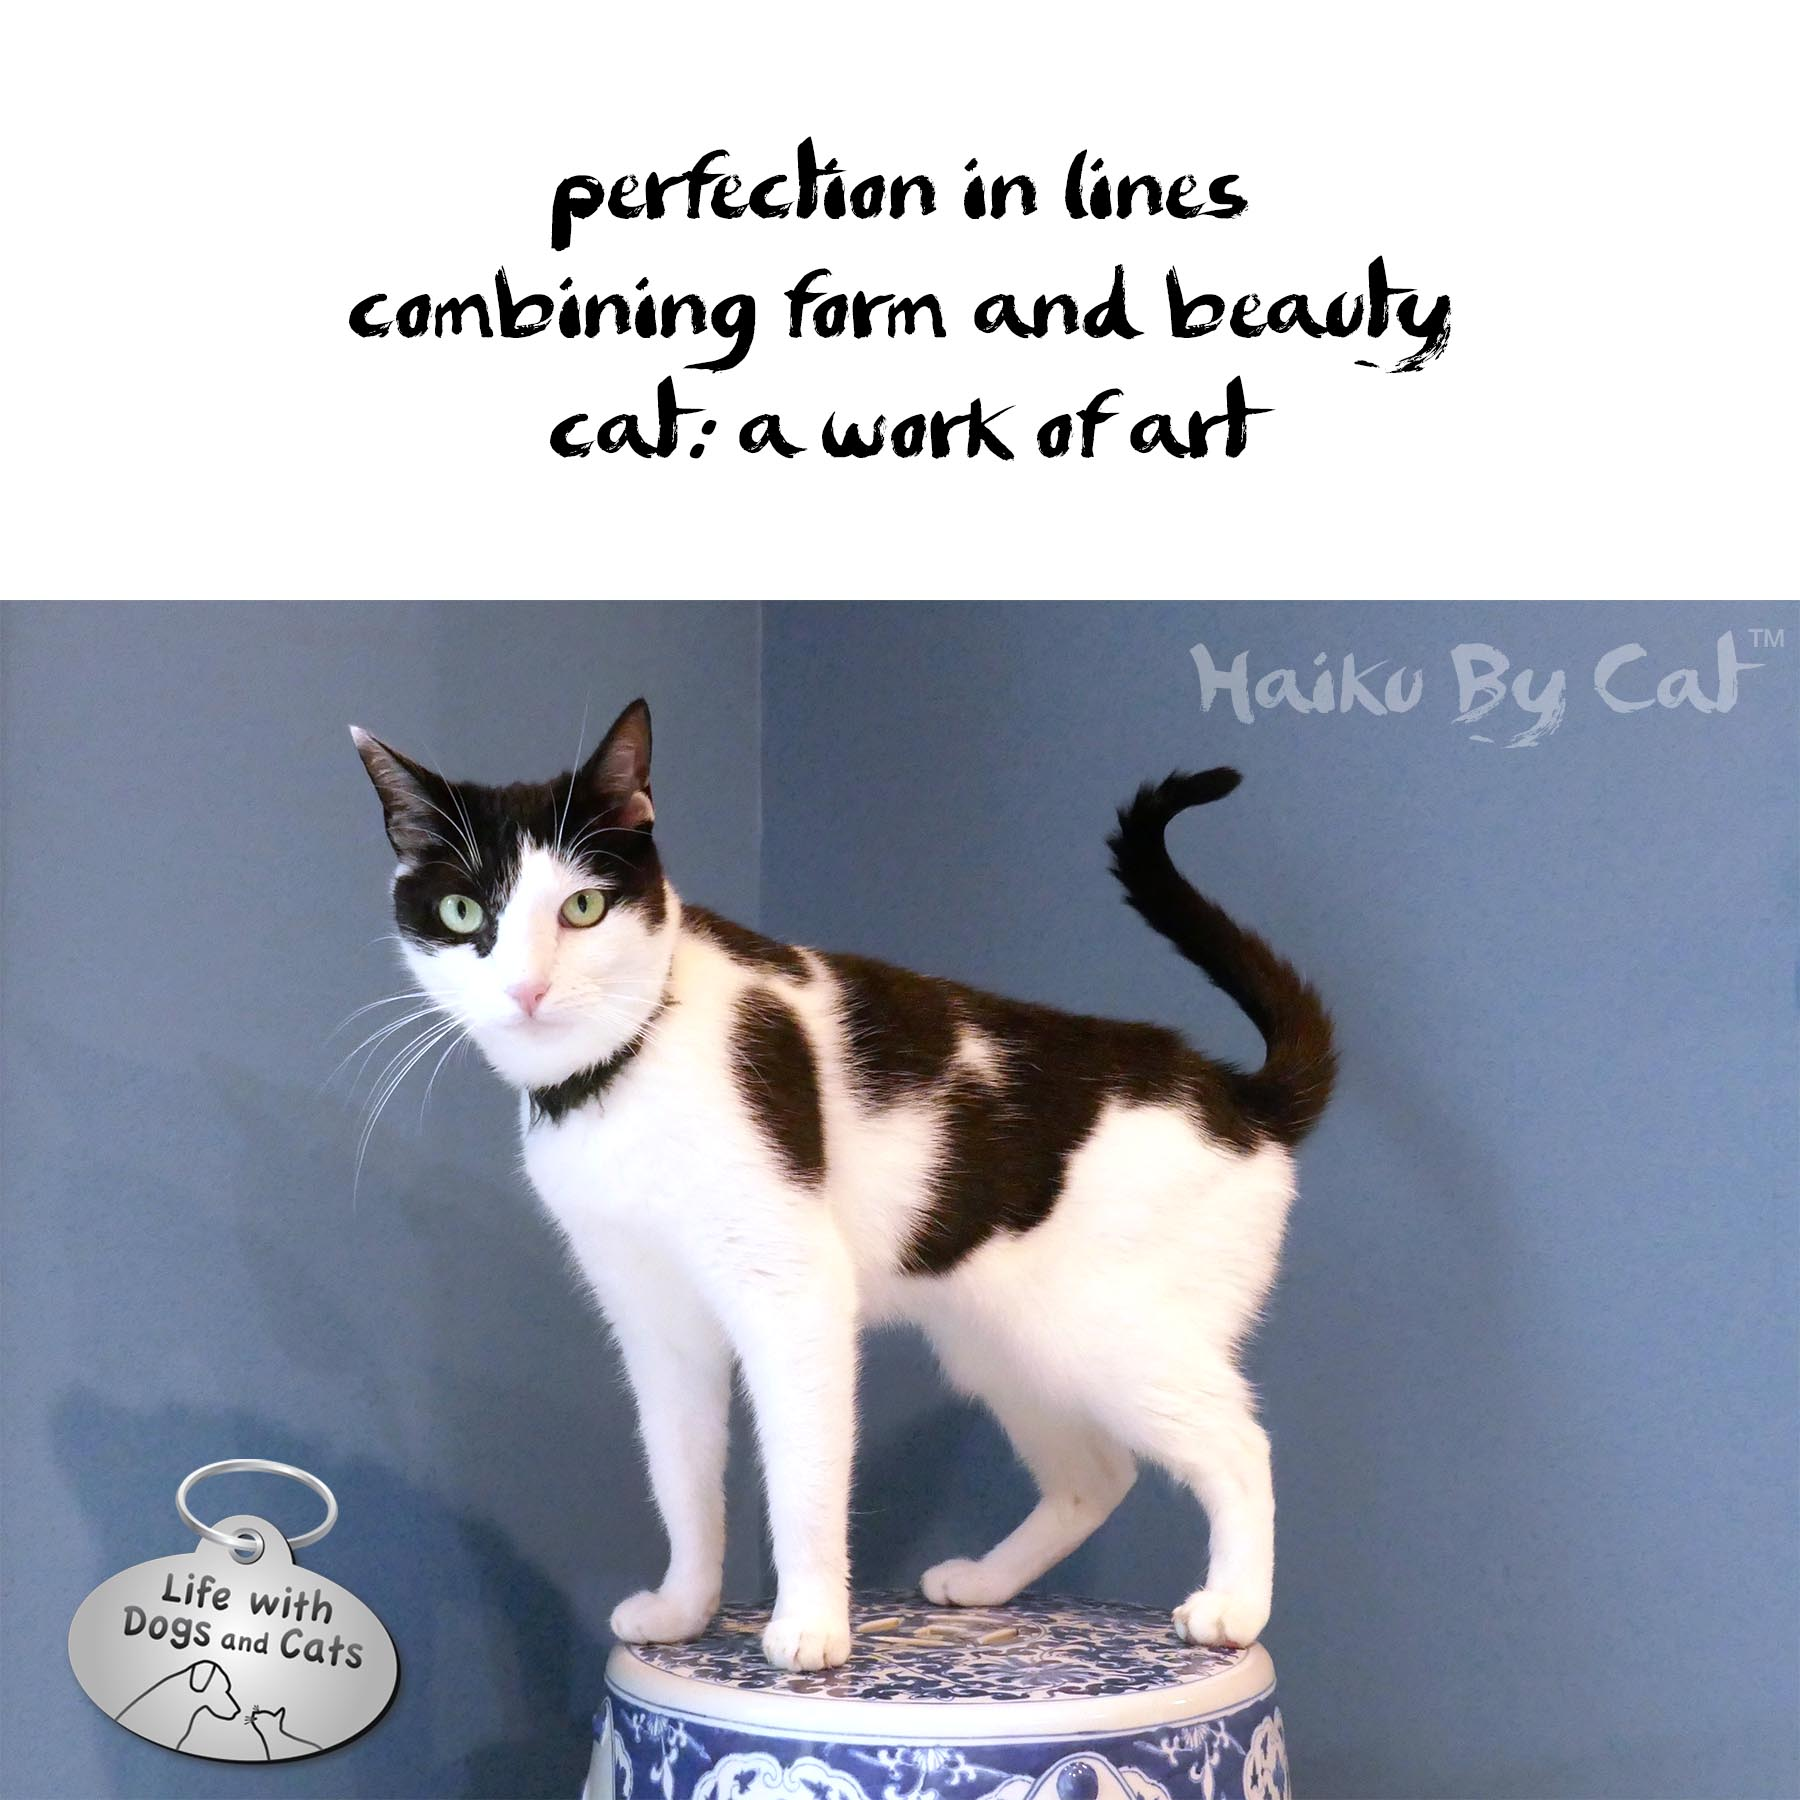 perfection in lines / combining form and beauty / cat: a work of art #HaikuByCat #Haikusday #MicroPoetry